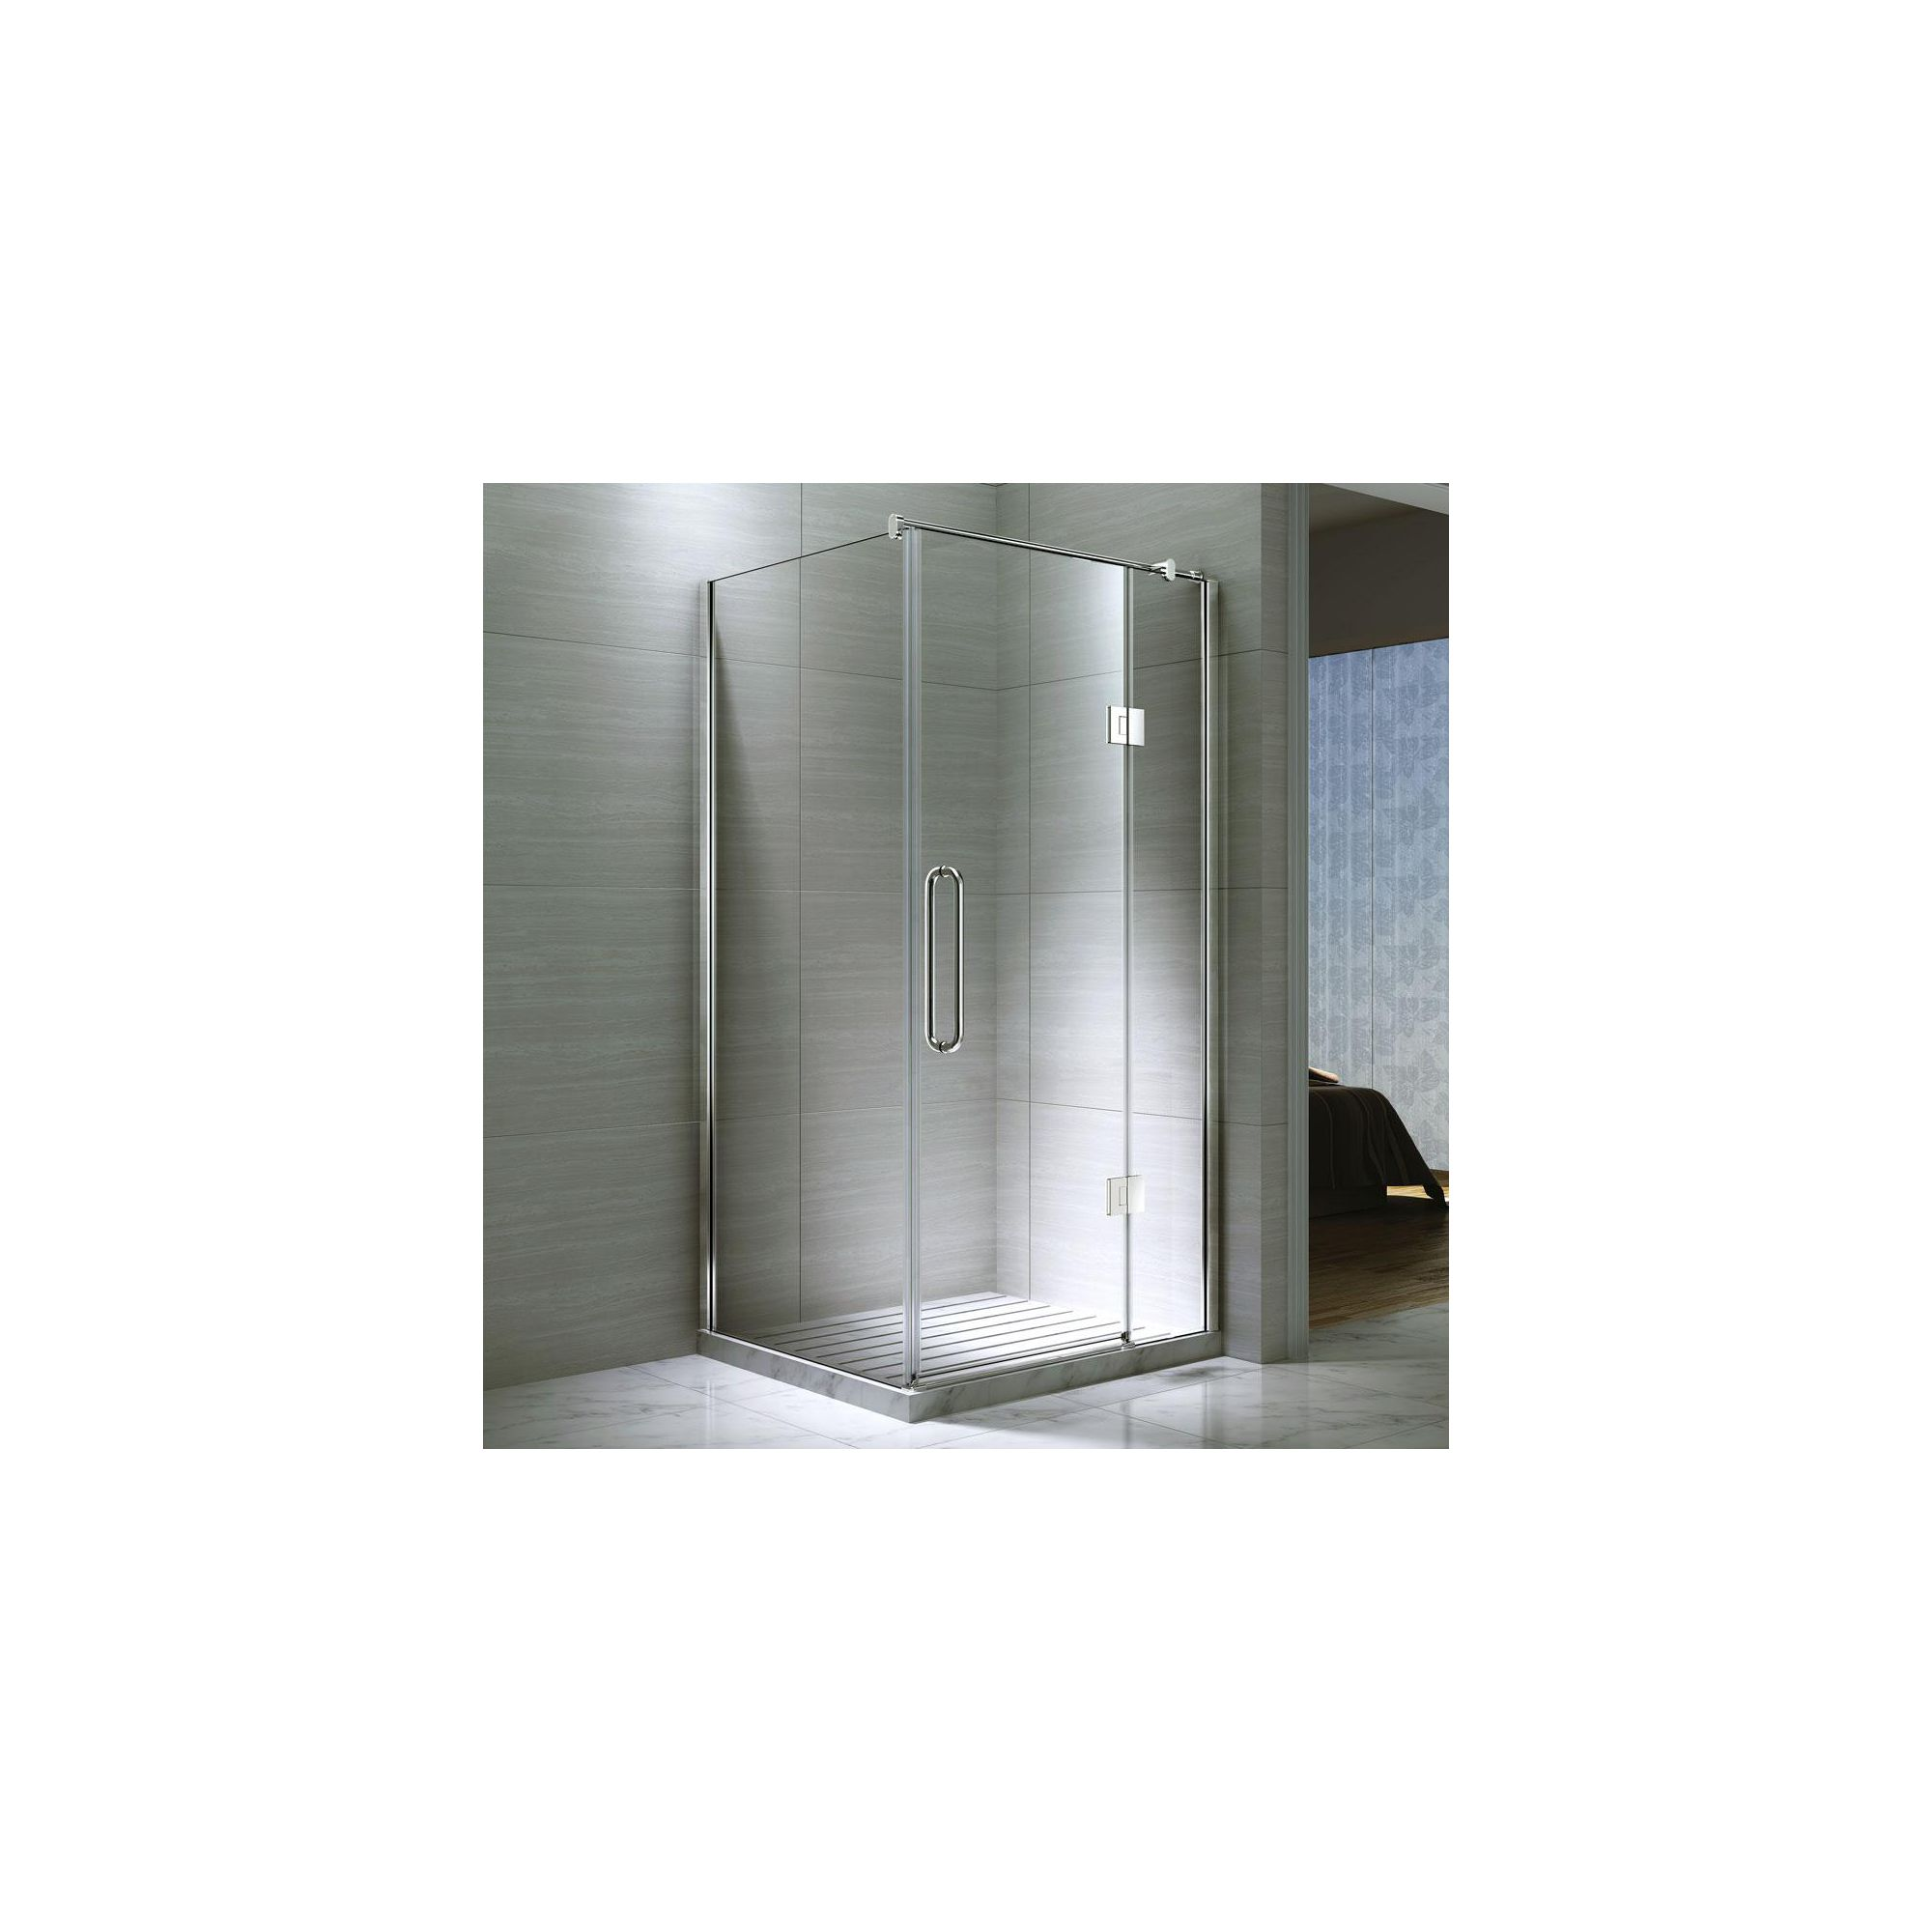 Desire Ten Hinged Shower Door with Side Panel, 1000mm x 900mm, Semi-Frameless, 10mm Glass at Tesco Direct